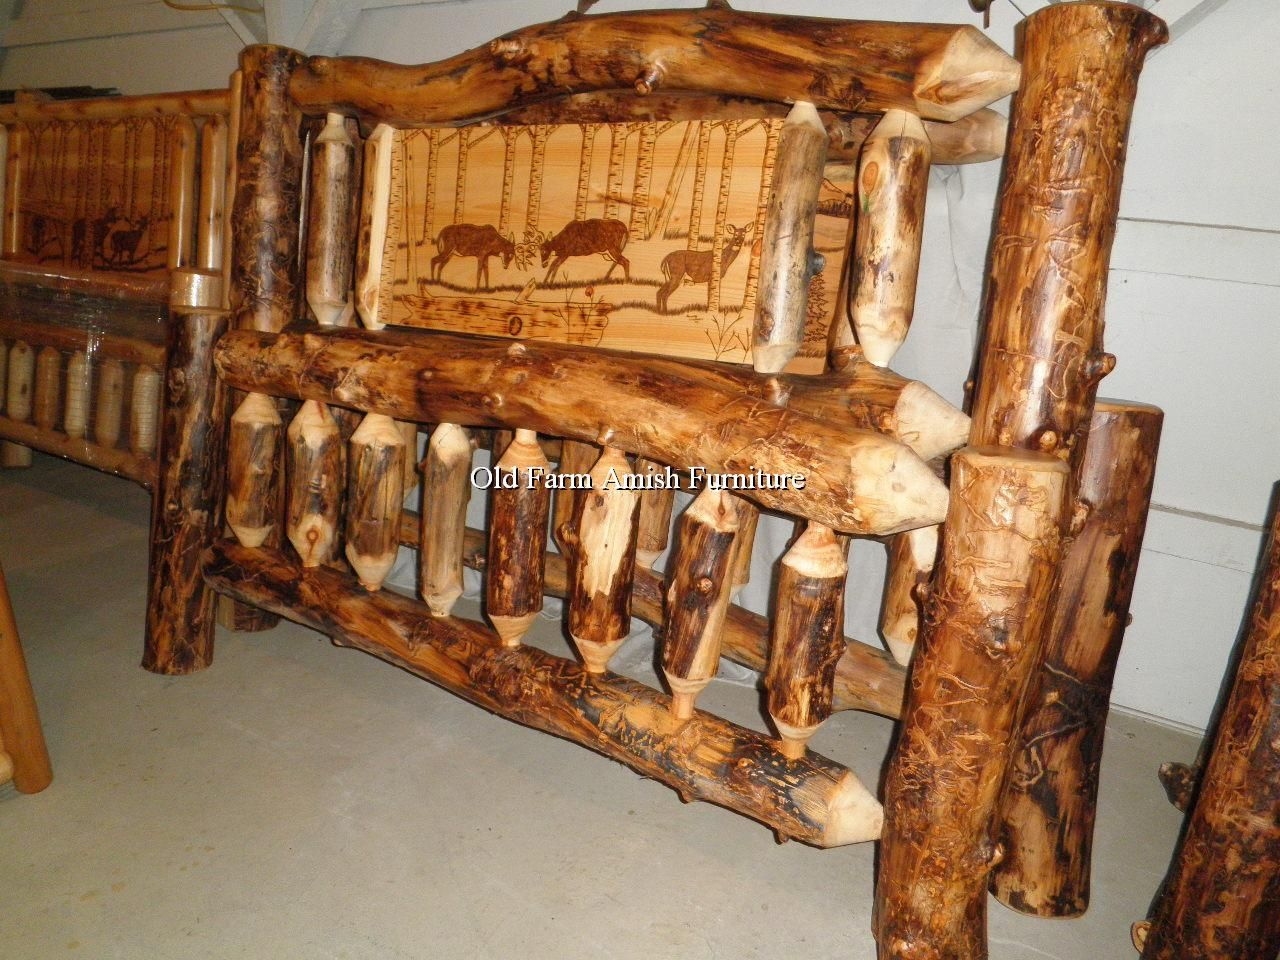 Aspen Log Buck Bed Old Farm Amish Furniture Dayton Pa 814 257